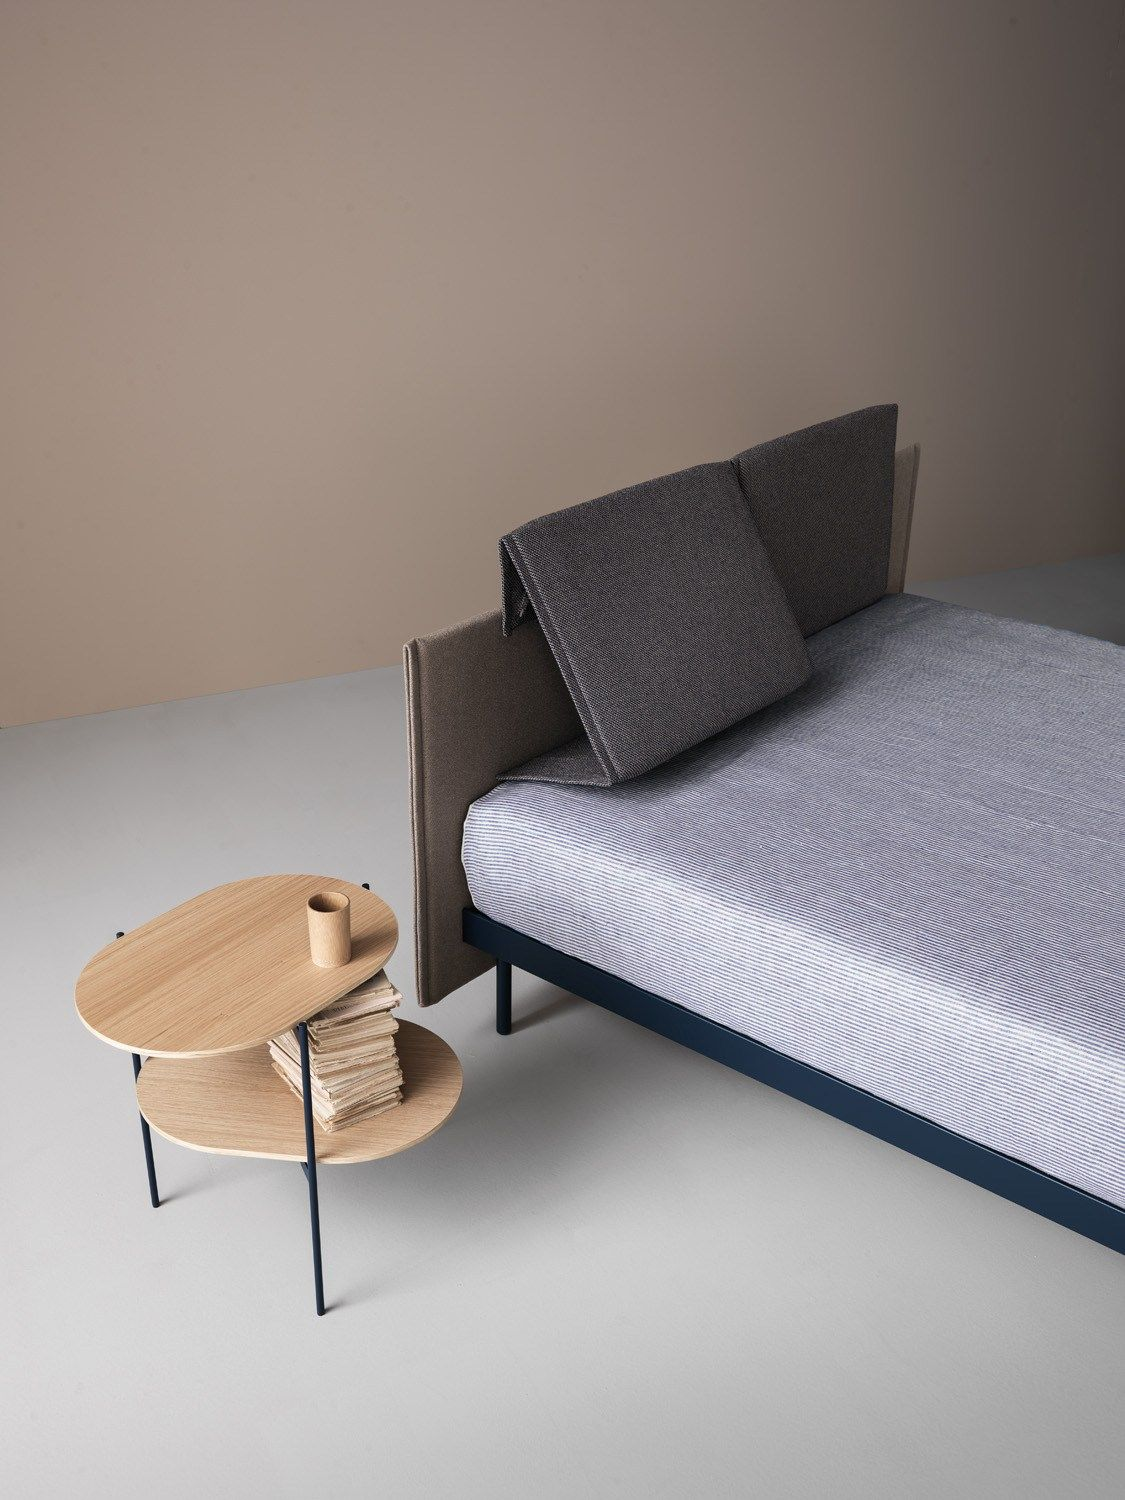 Pli Bed By Caccaro Fabric Double Bed With Adjustable